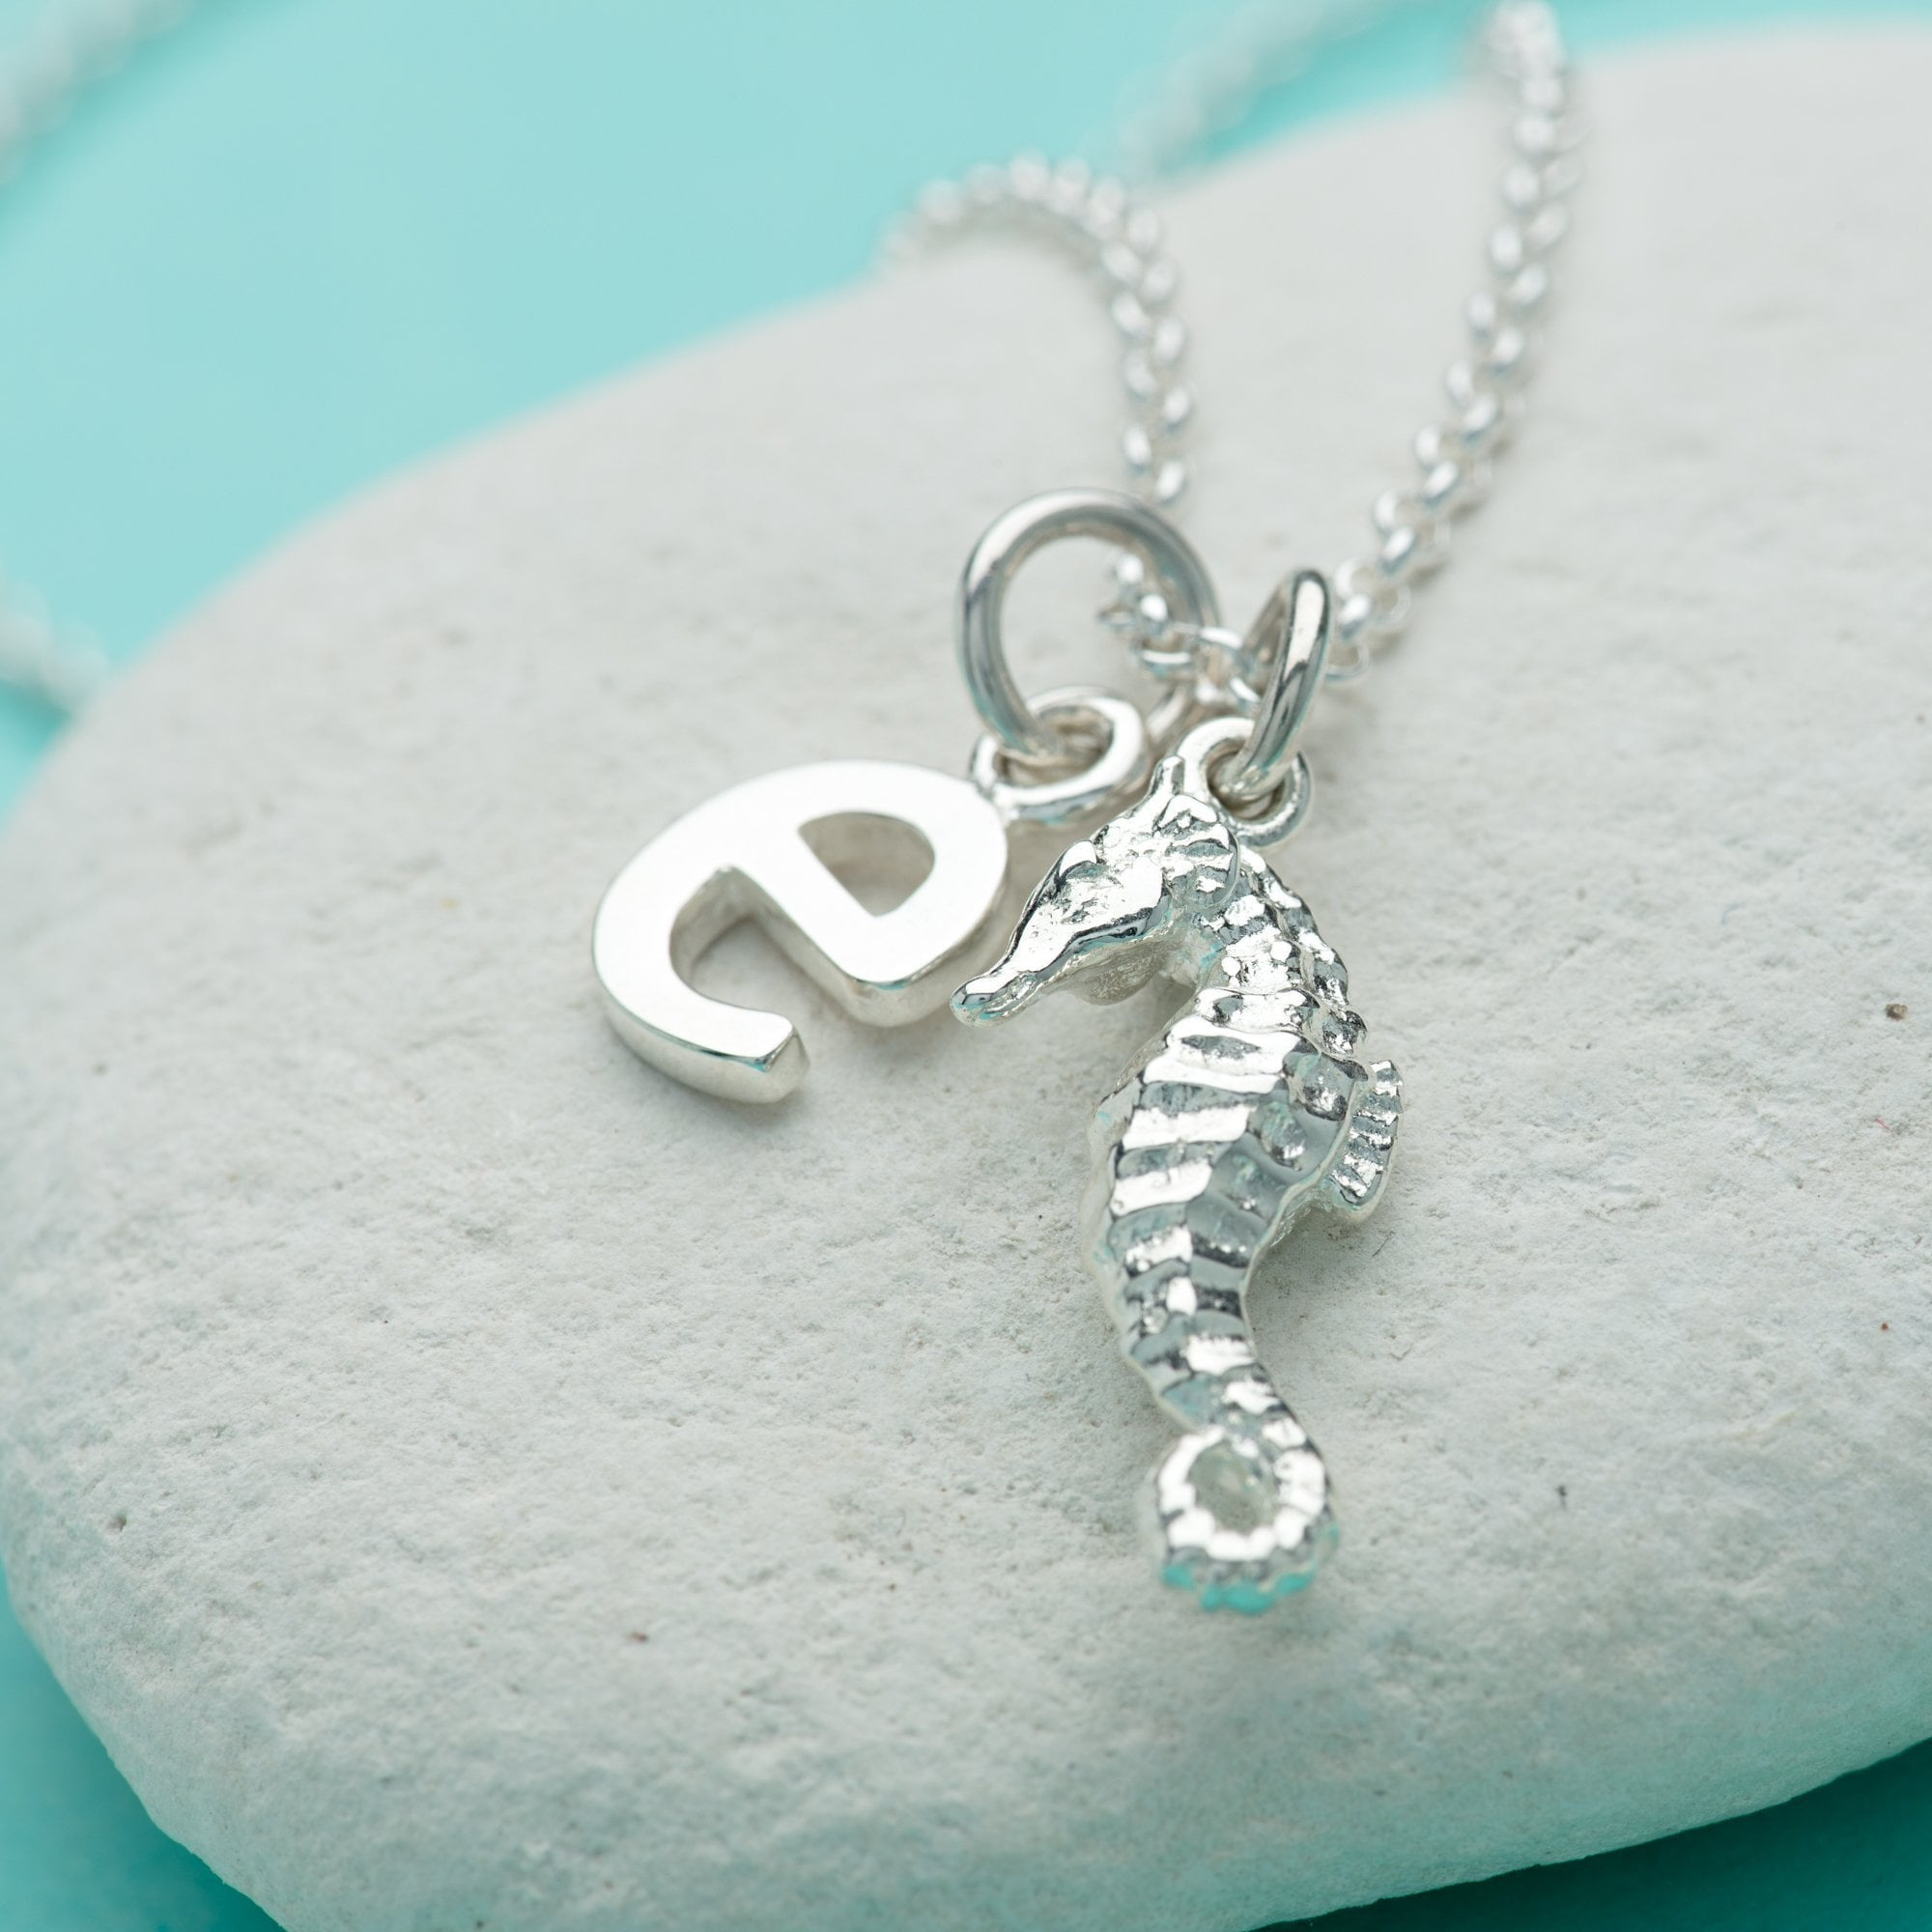 Silver Seahorse Jewellery Set With Stud Earrings - Lily Charmed